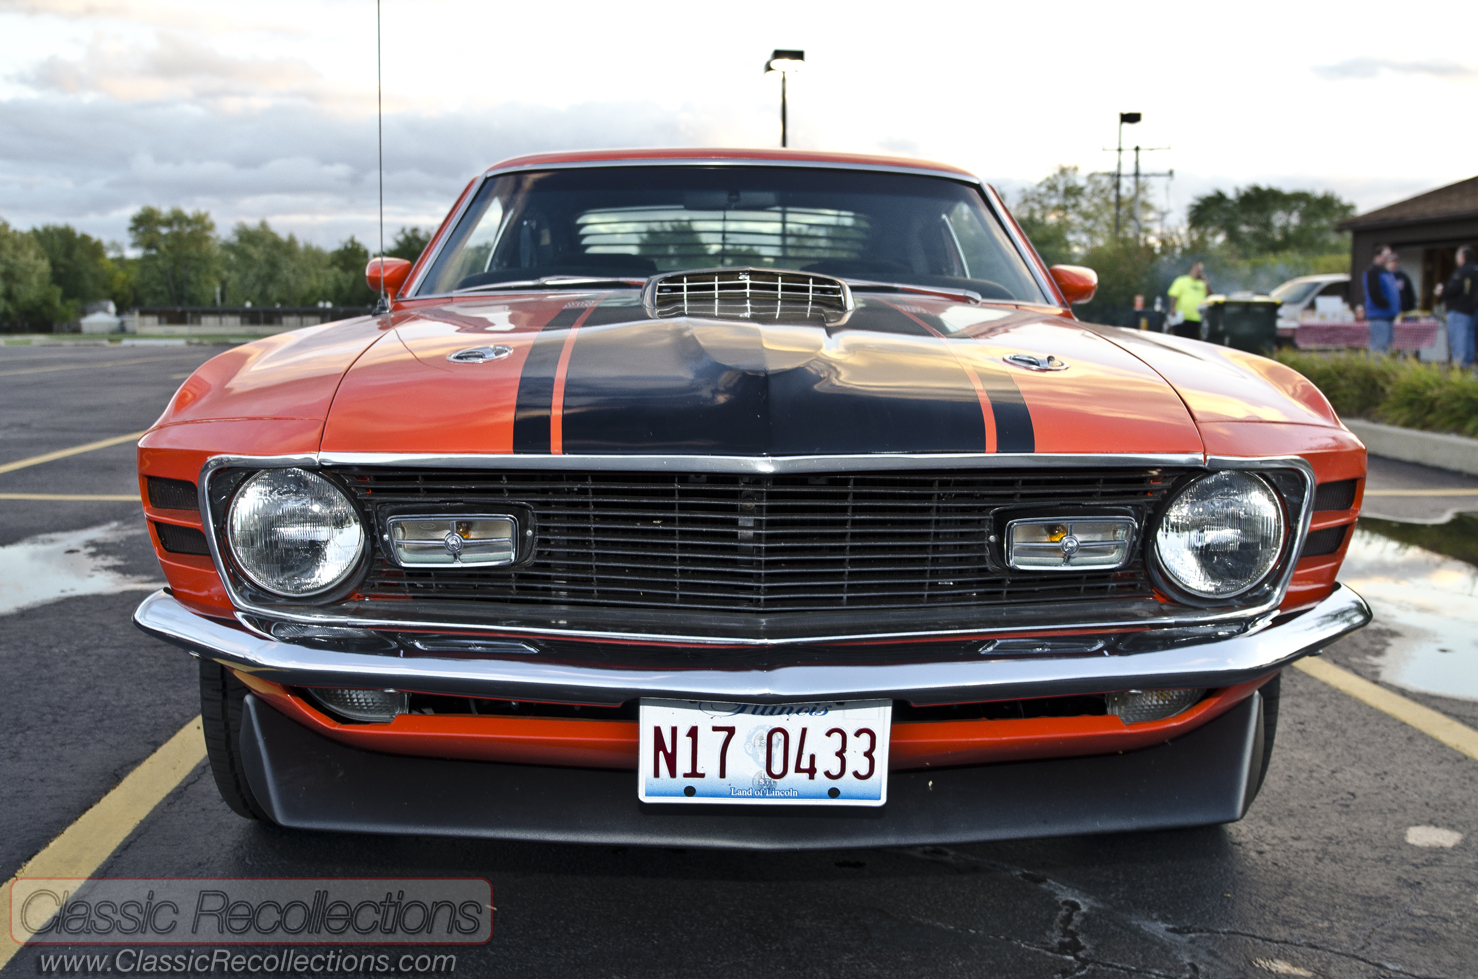 Feature 1970 Ford Mustang Mach 1 Classic Recollections Black This Was Found In A Wisconsin Barn